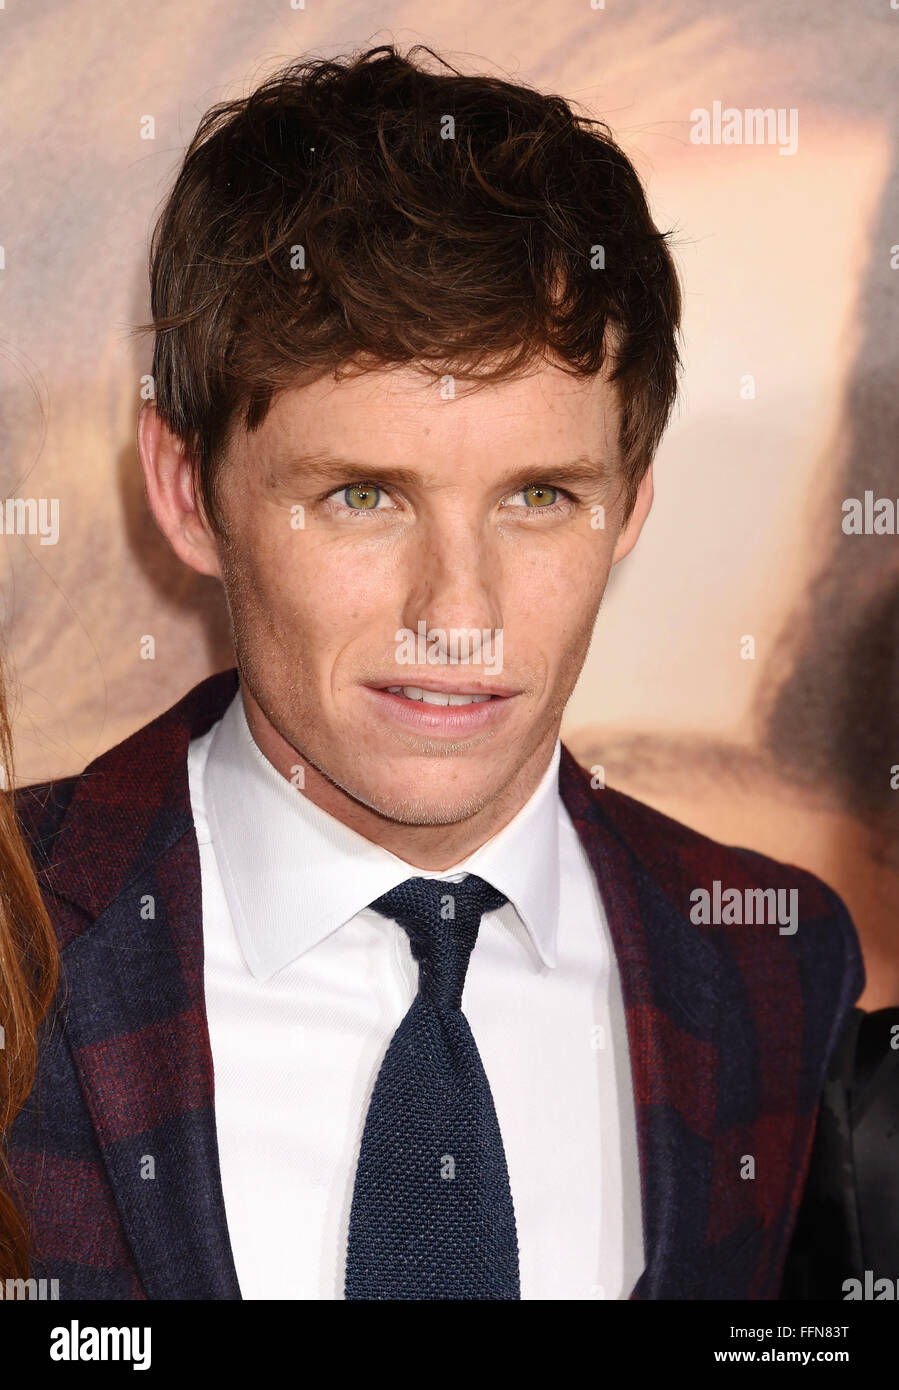 Actor Eddie Redmayne arrives at the premiere of Focus Features' 'The Danish Girl' at Westwood Village - Stock Image